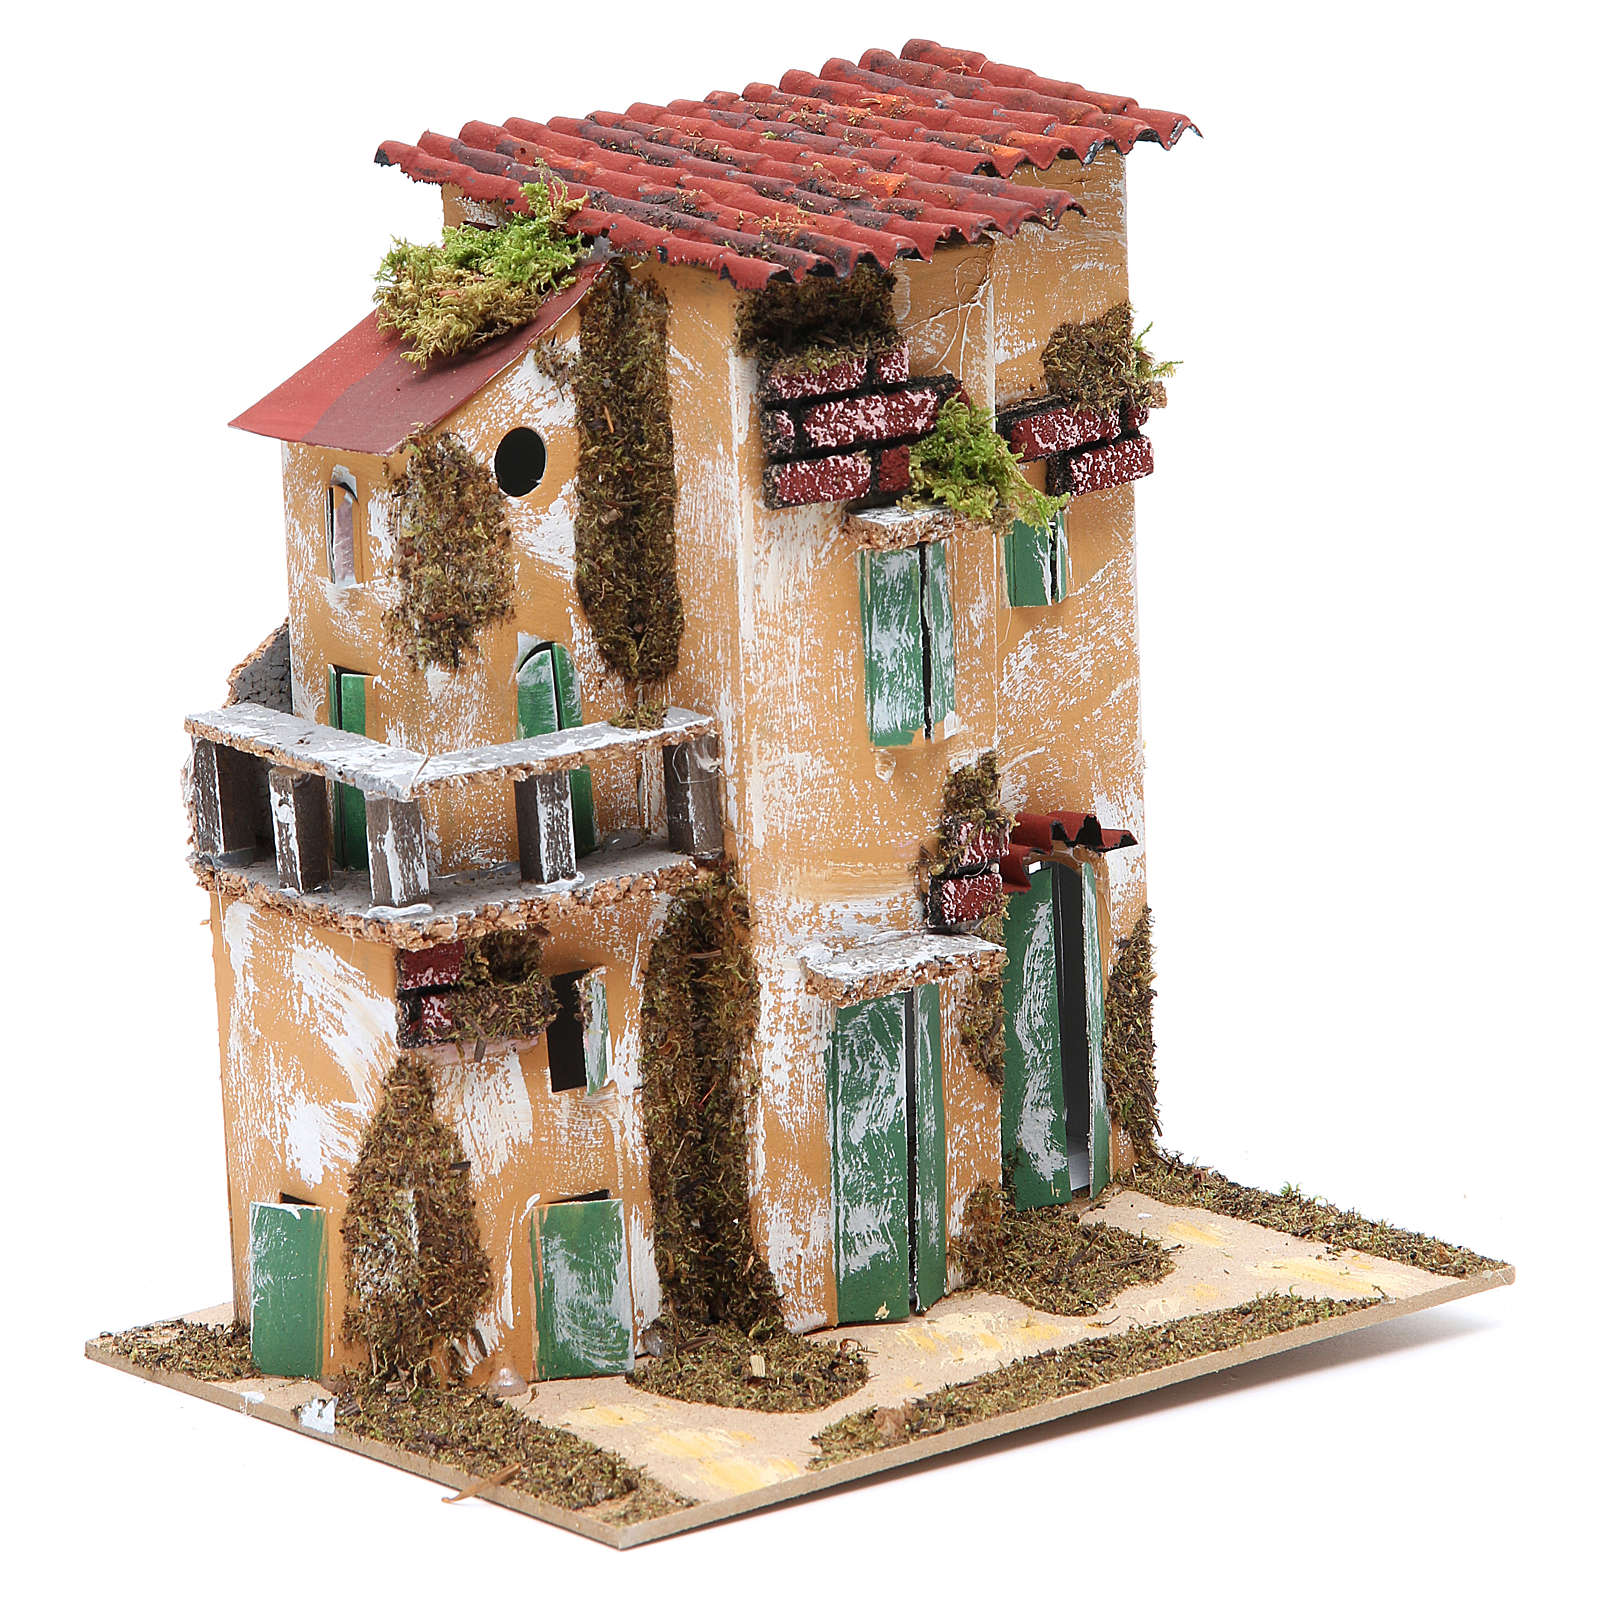 Nativity farmhouse with hens 21x21x16cm, assorted models 4